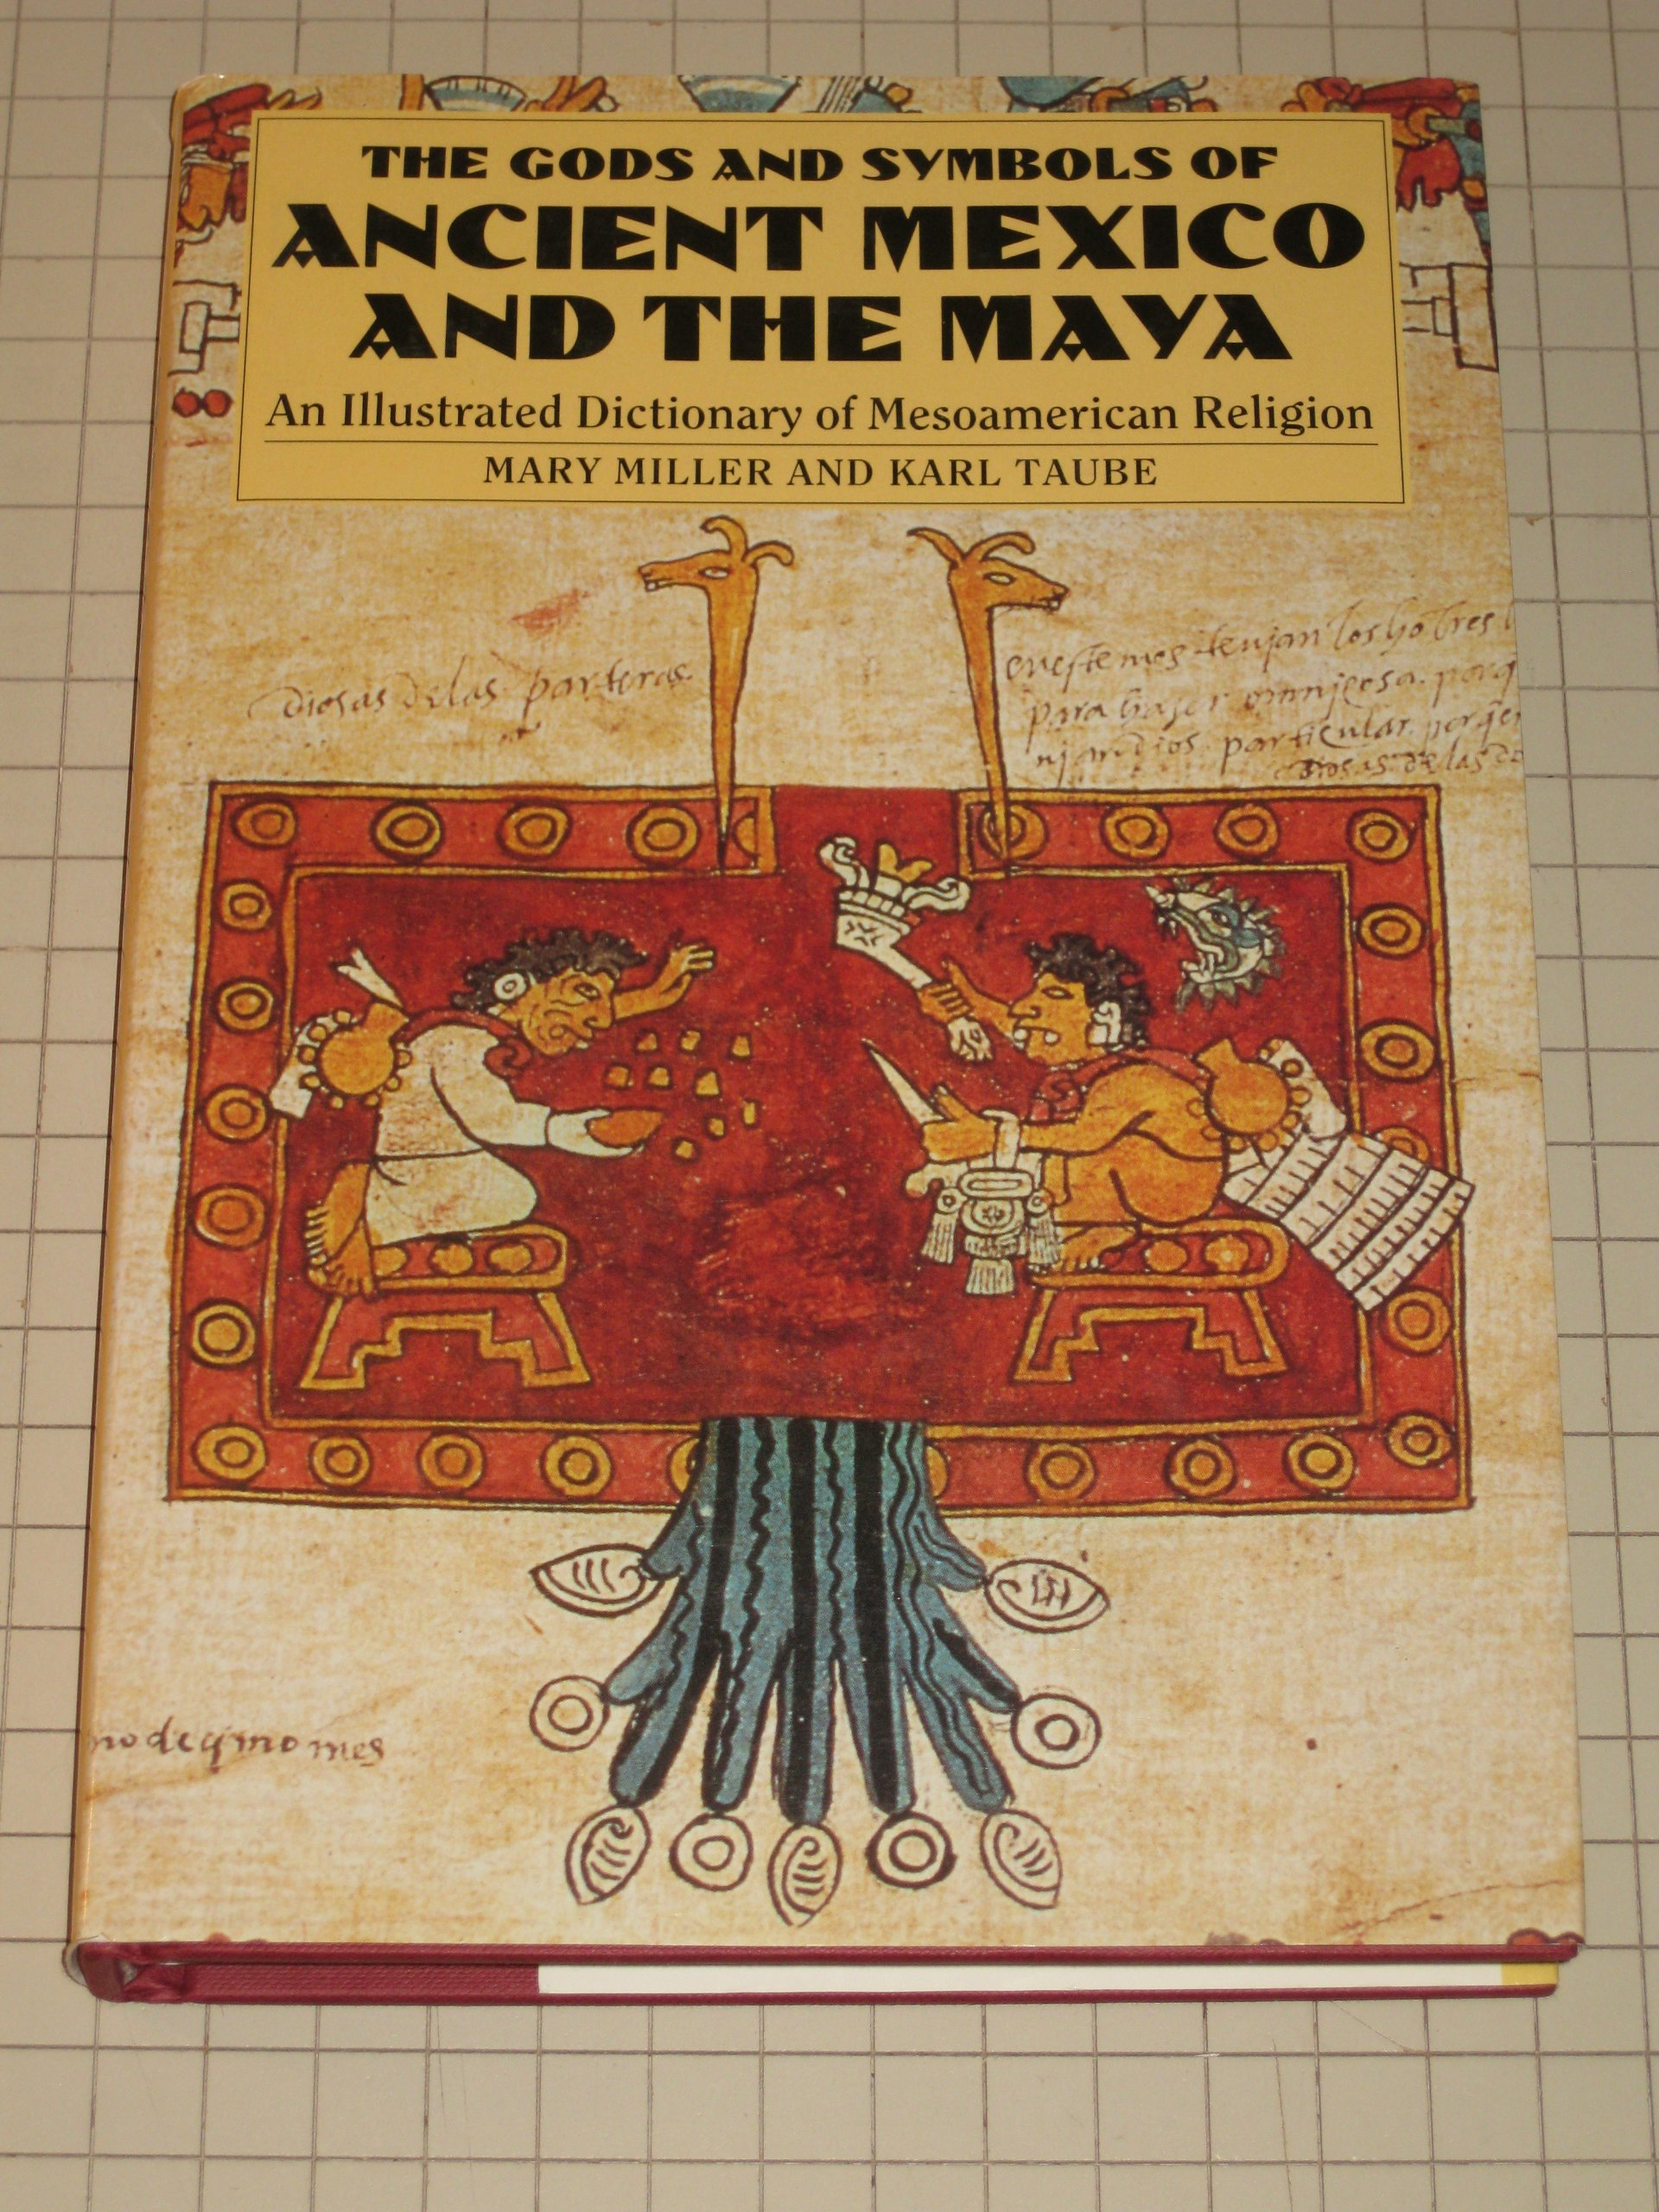 The gods and symbols of ancient mexico and the maya an illustrated the gods and symbols of ancient mexico and the maya an illustrated dictionary of mesoamerican religion mary ellen miller karl a taube 9780500050682 biocorpaavc Choice Image